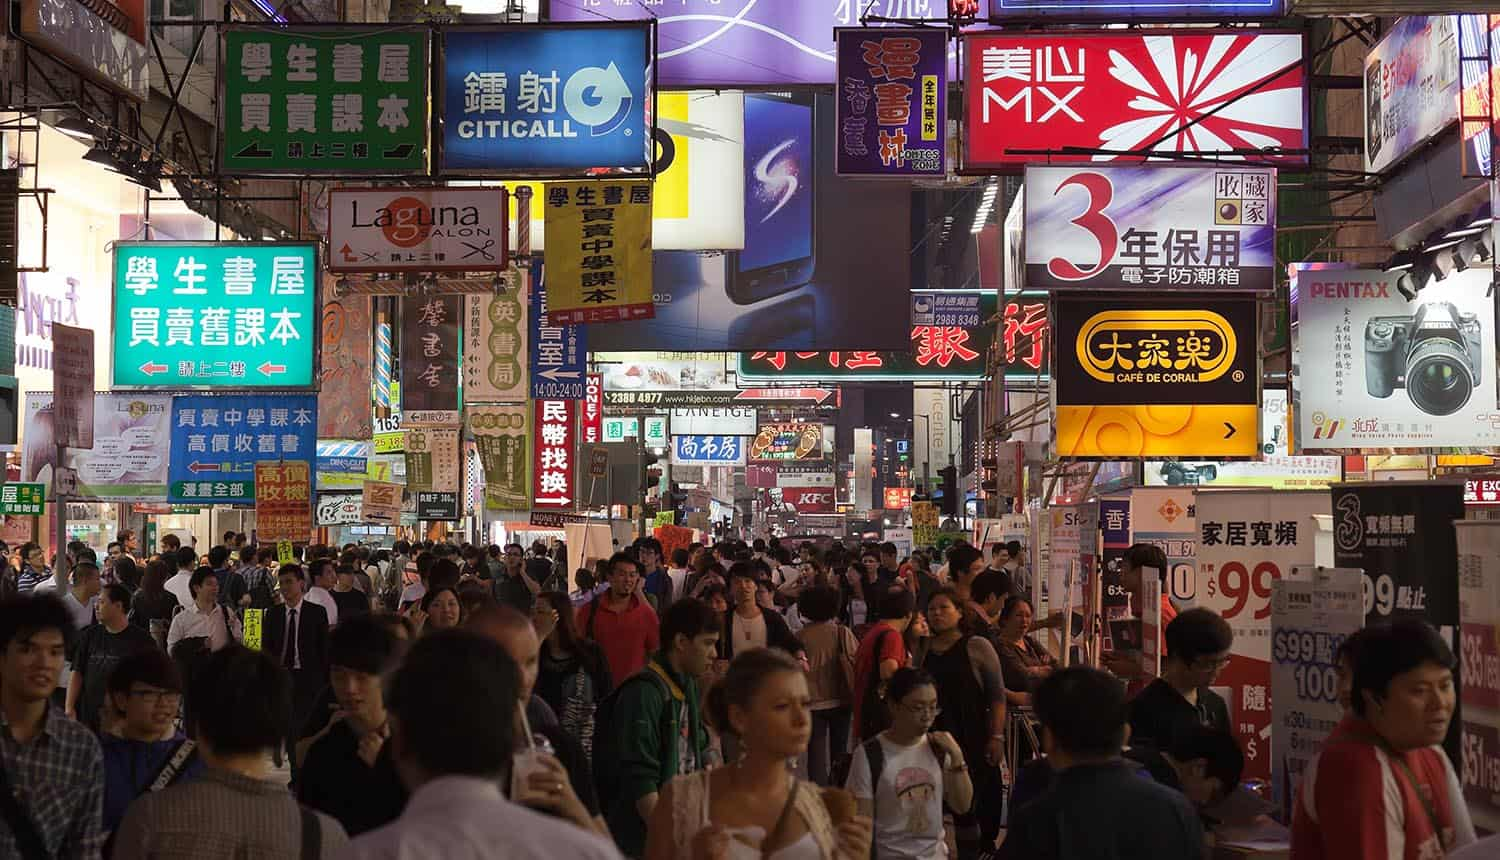 Shopping street at night showing the cyber awareness gap of SMEs in Asia Pacific